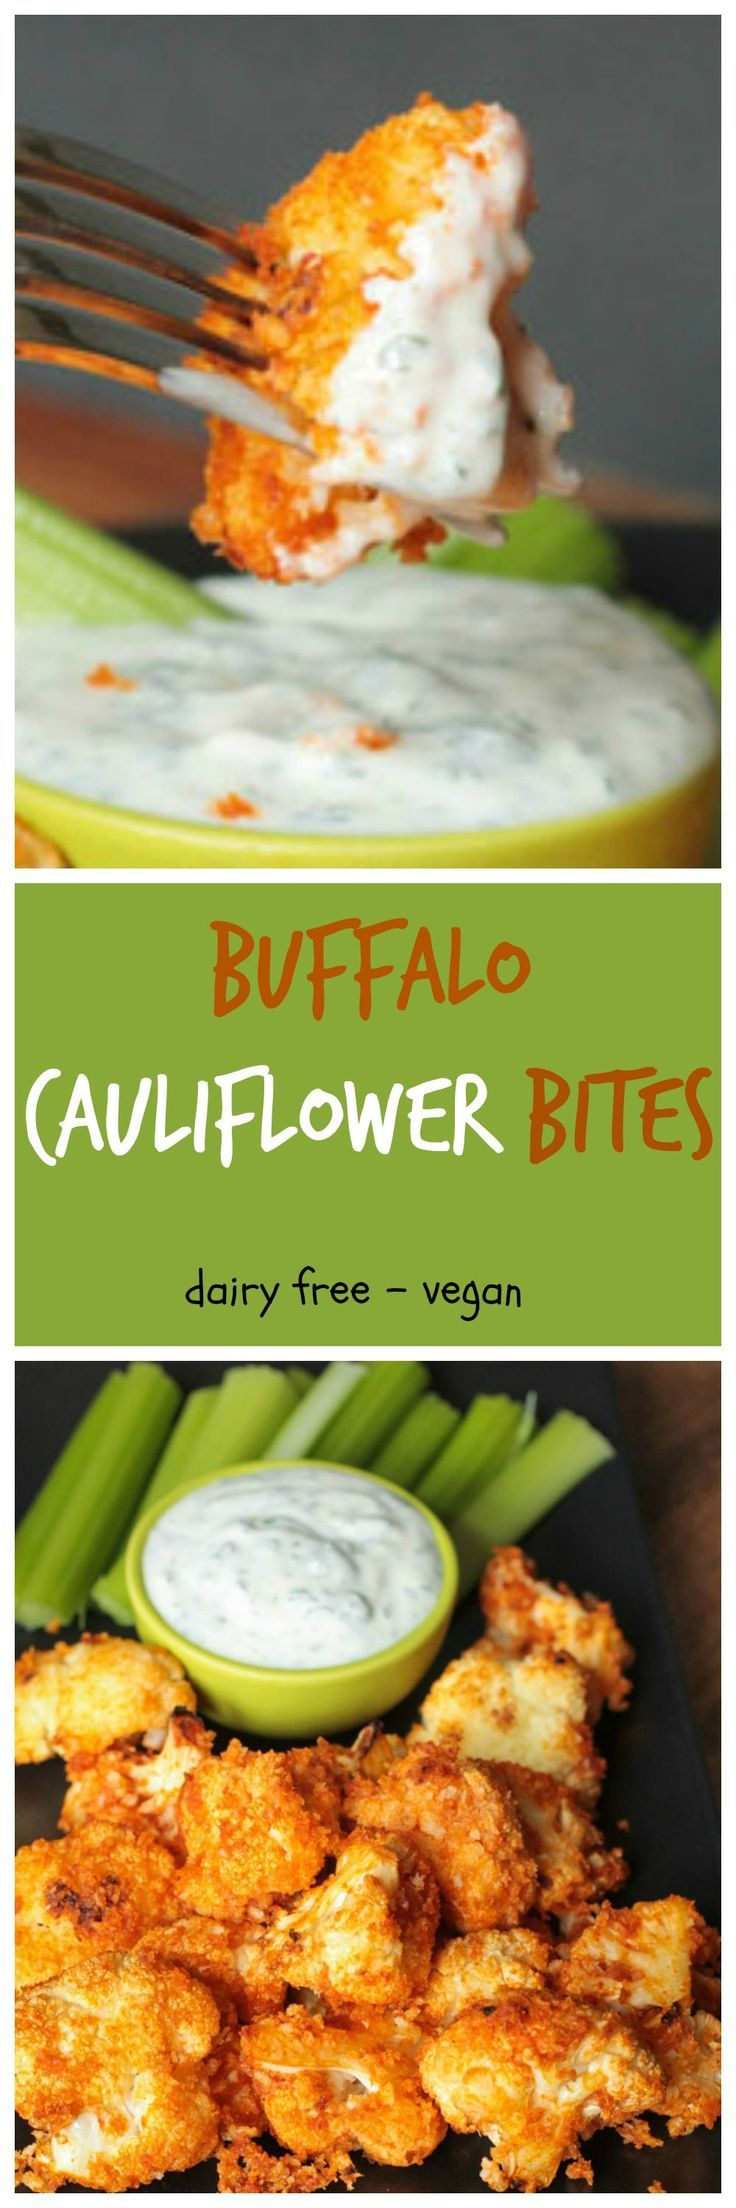 Hands down my all time favorite !! Only I make vegan bluecheese dressing. I have been eating so unhealthy